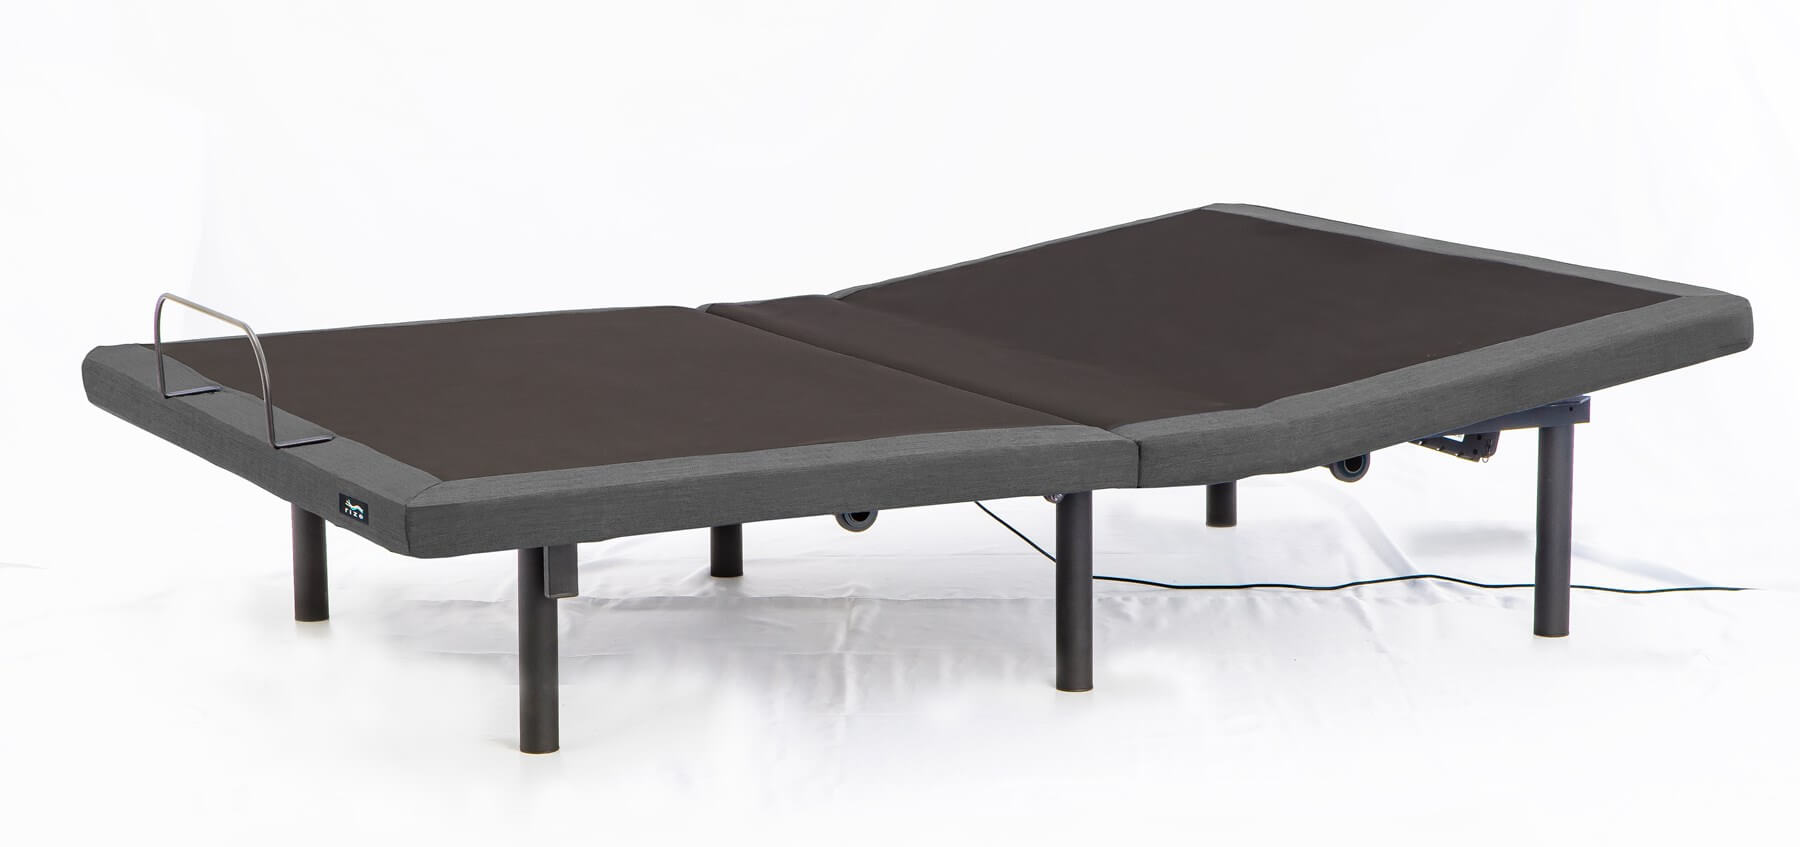 Rize Tranquility Adjustable Bed Base By Mantua Tampa Bay